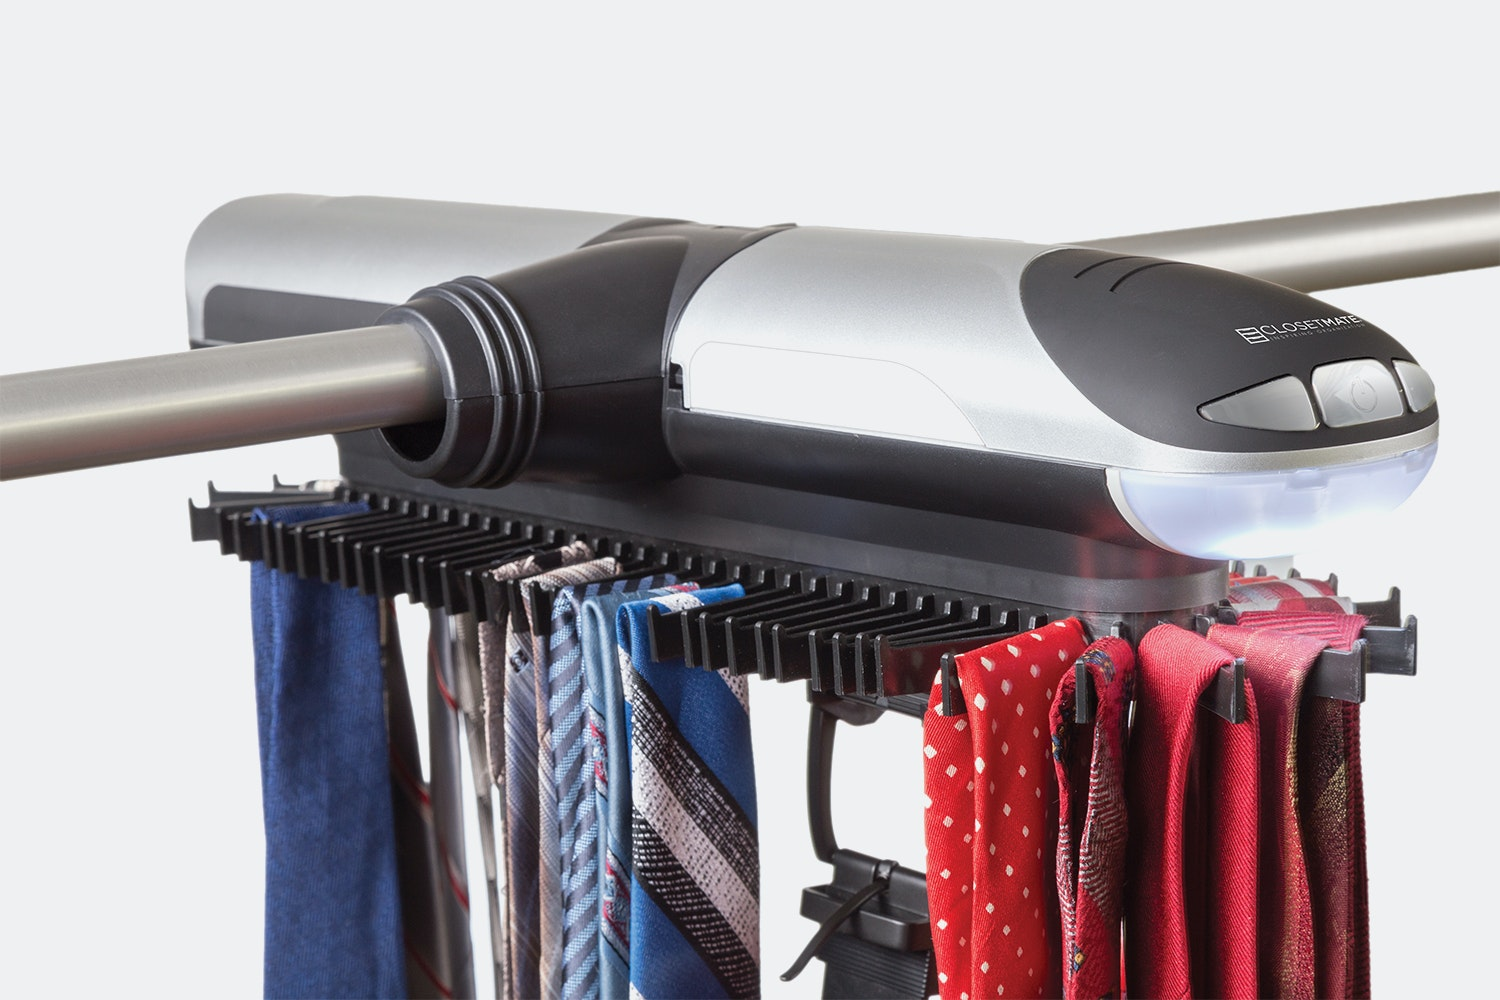 ClosetMate Motorized Tie Rack